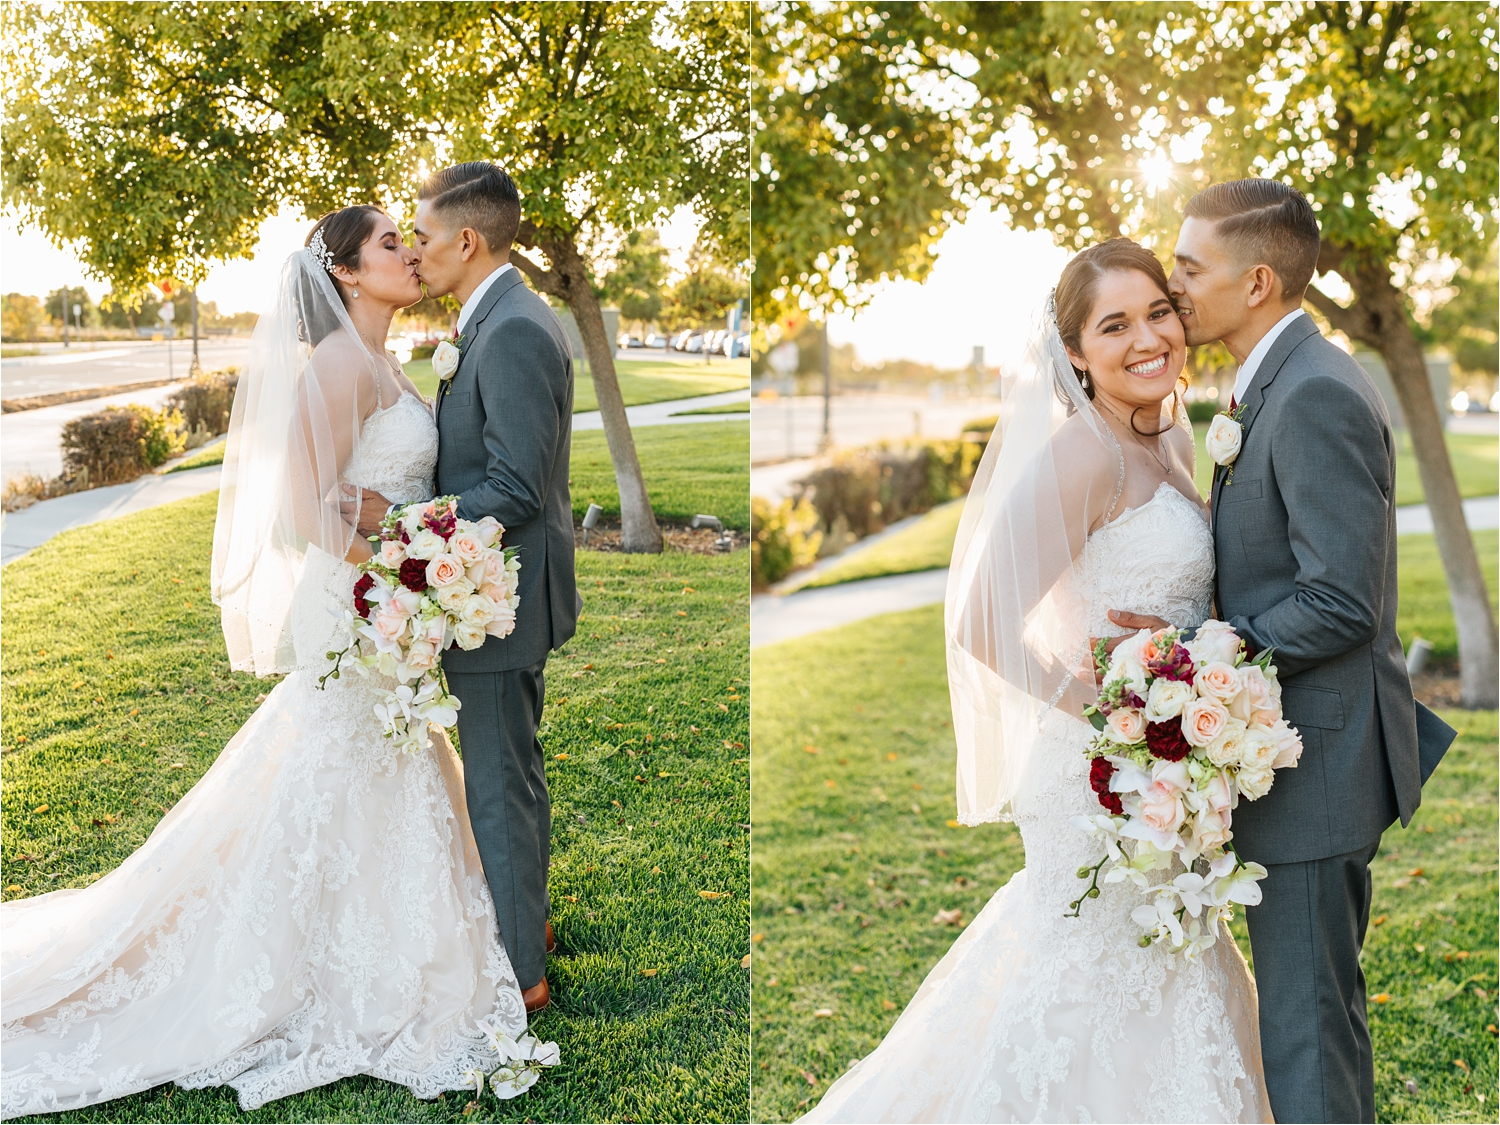 Romantic Sunset Bride and Groom Photos - https://brittneyhannonphotography.com